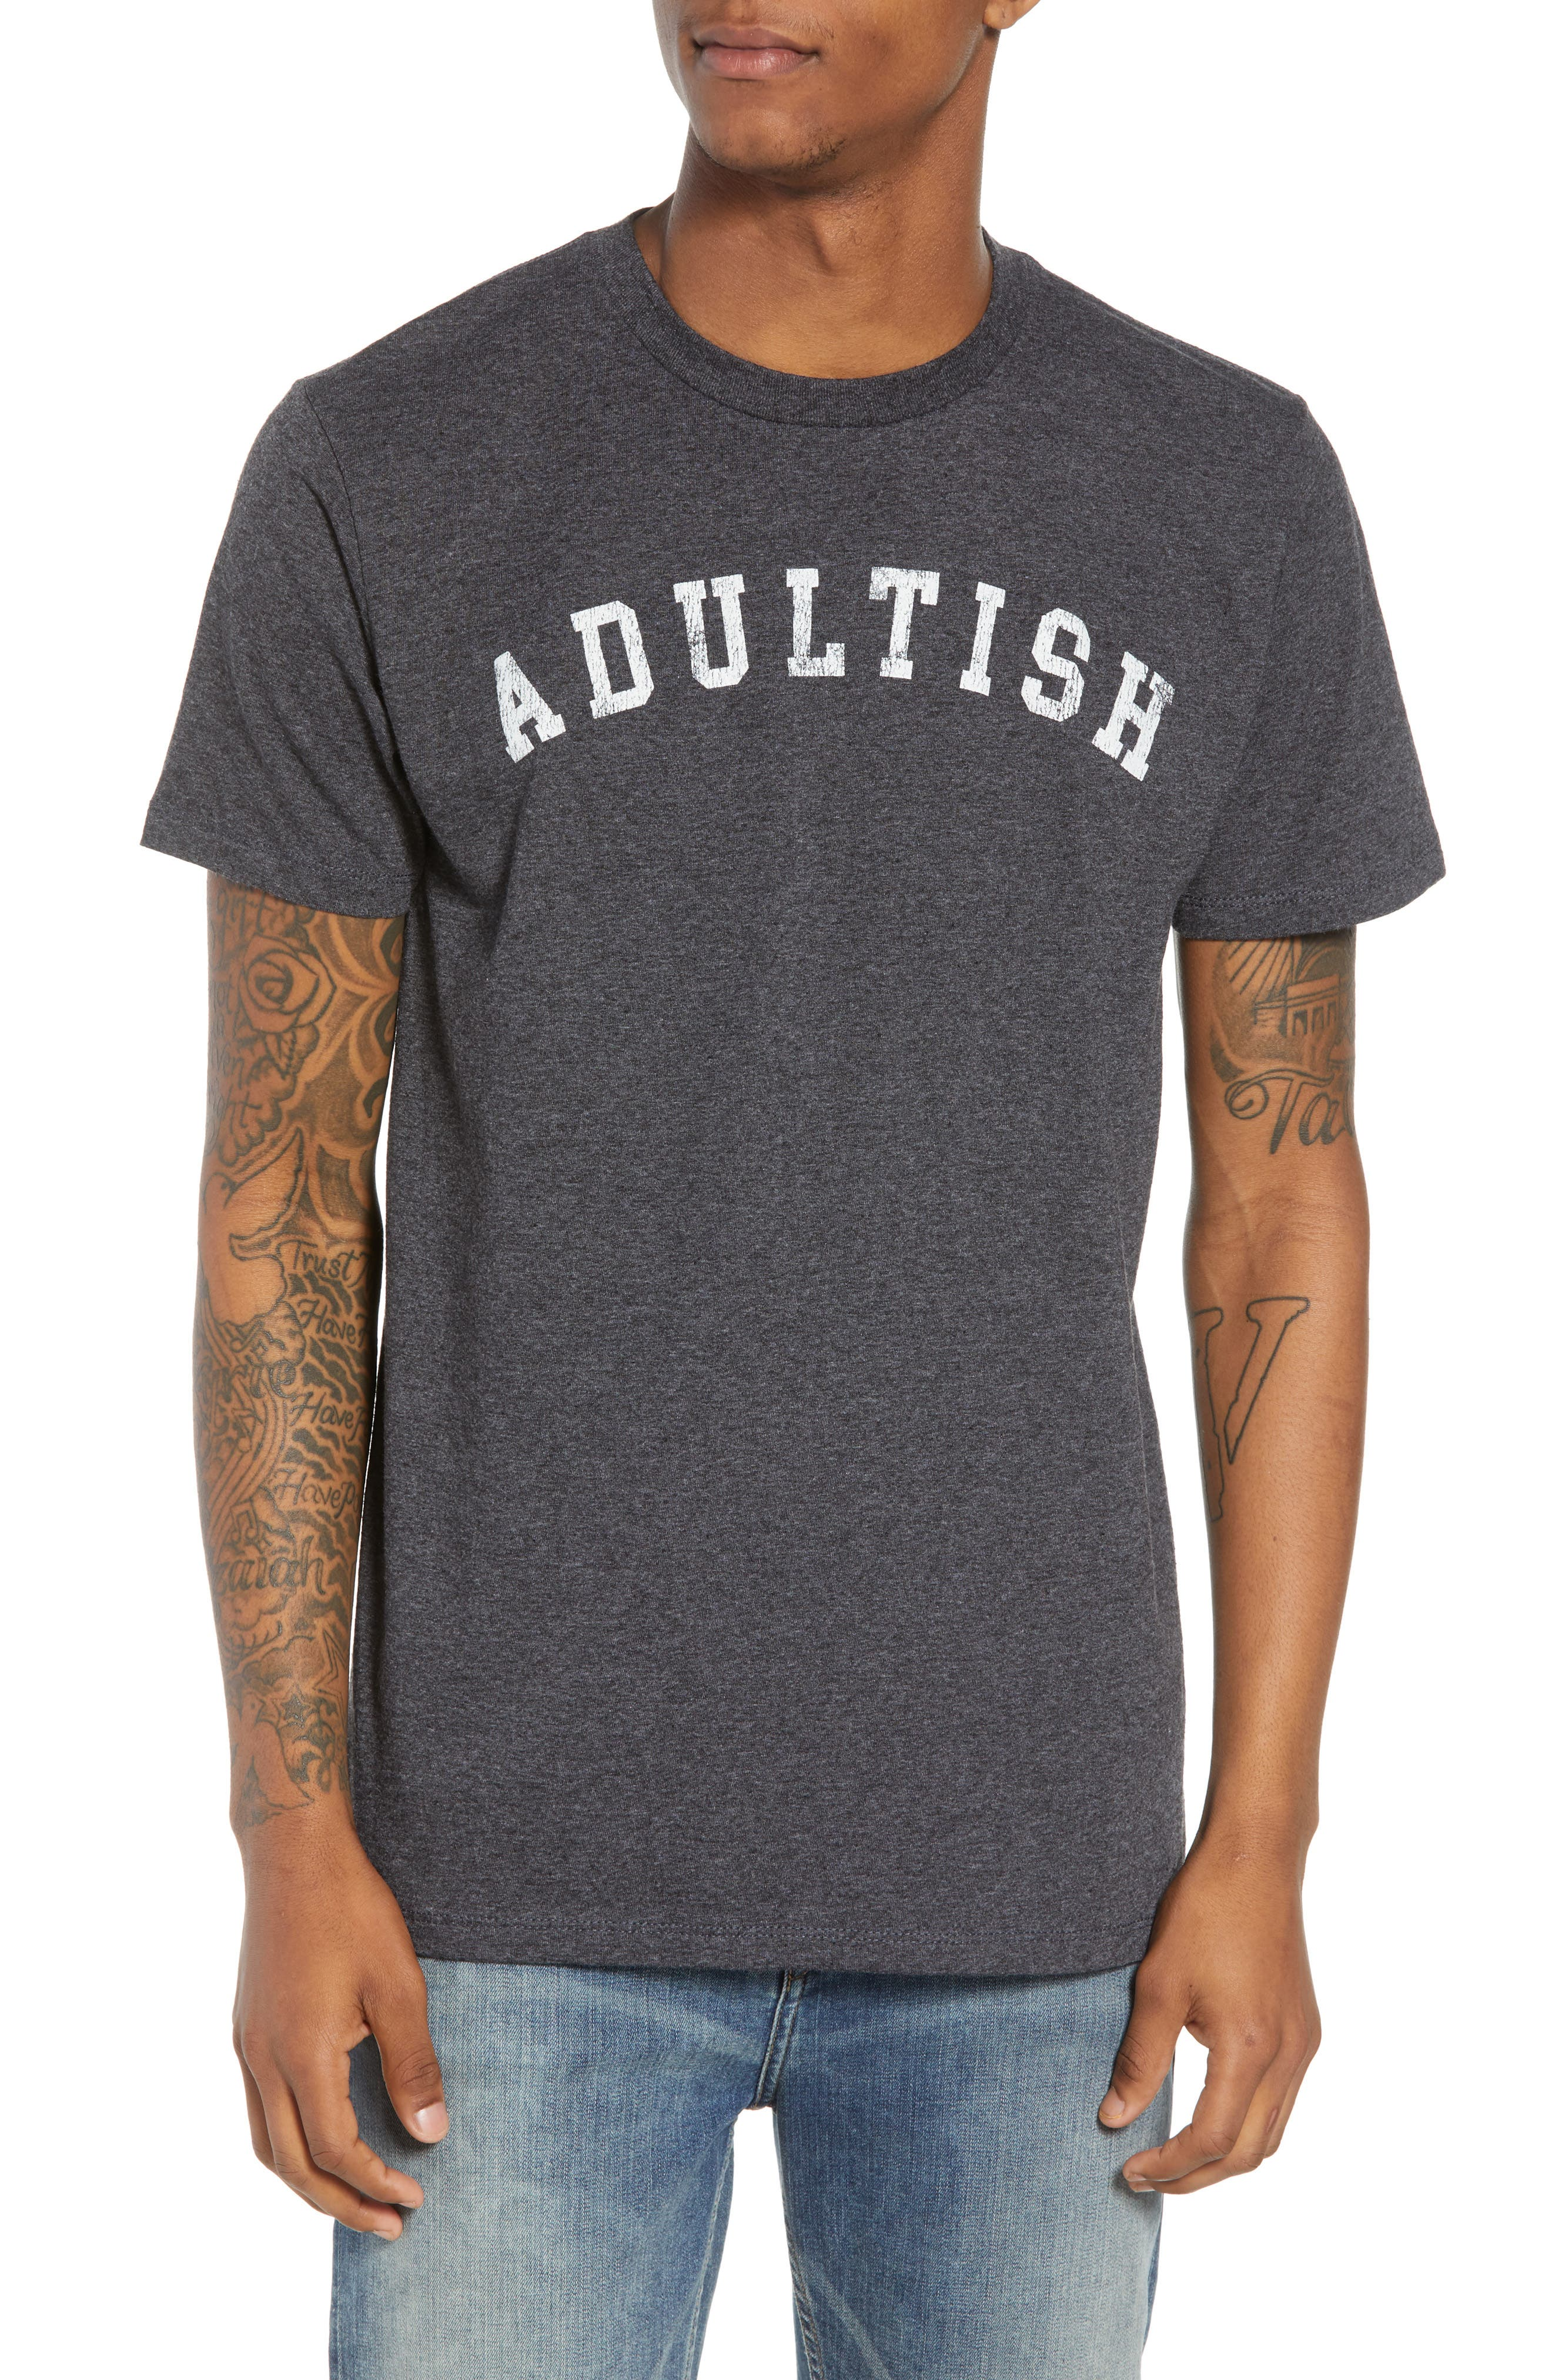 Adultish T-Shirt,                         Main,                         color, Black Tee Adultish